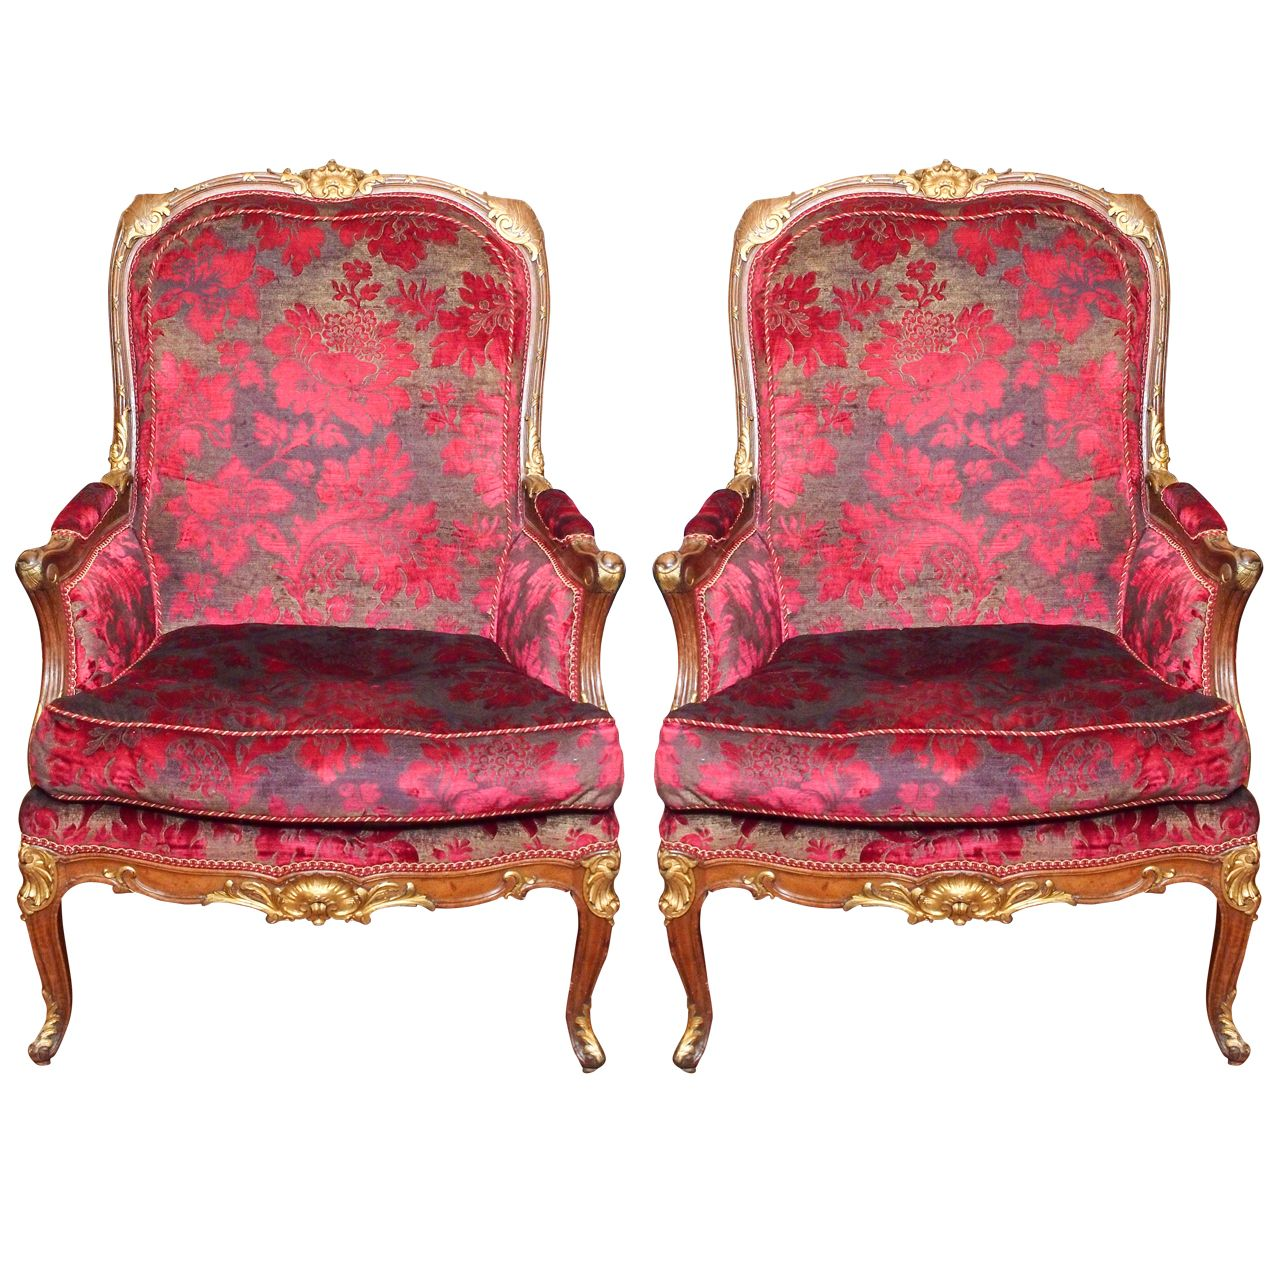 Pair of French Napoleon III Parcel Gilt Bergere | From a unique collection of antique and modern bergere chairs at http://www.1stdibs.com/furniture/seating/bergere-chairs/